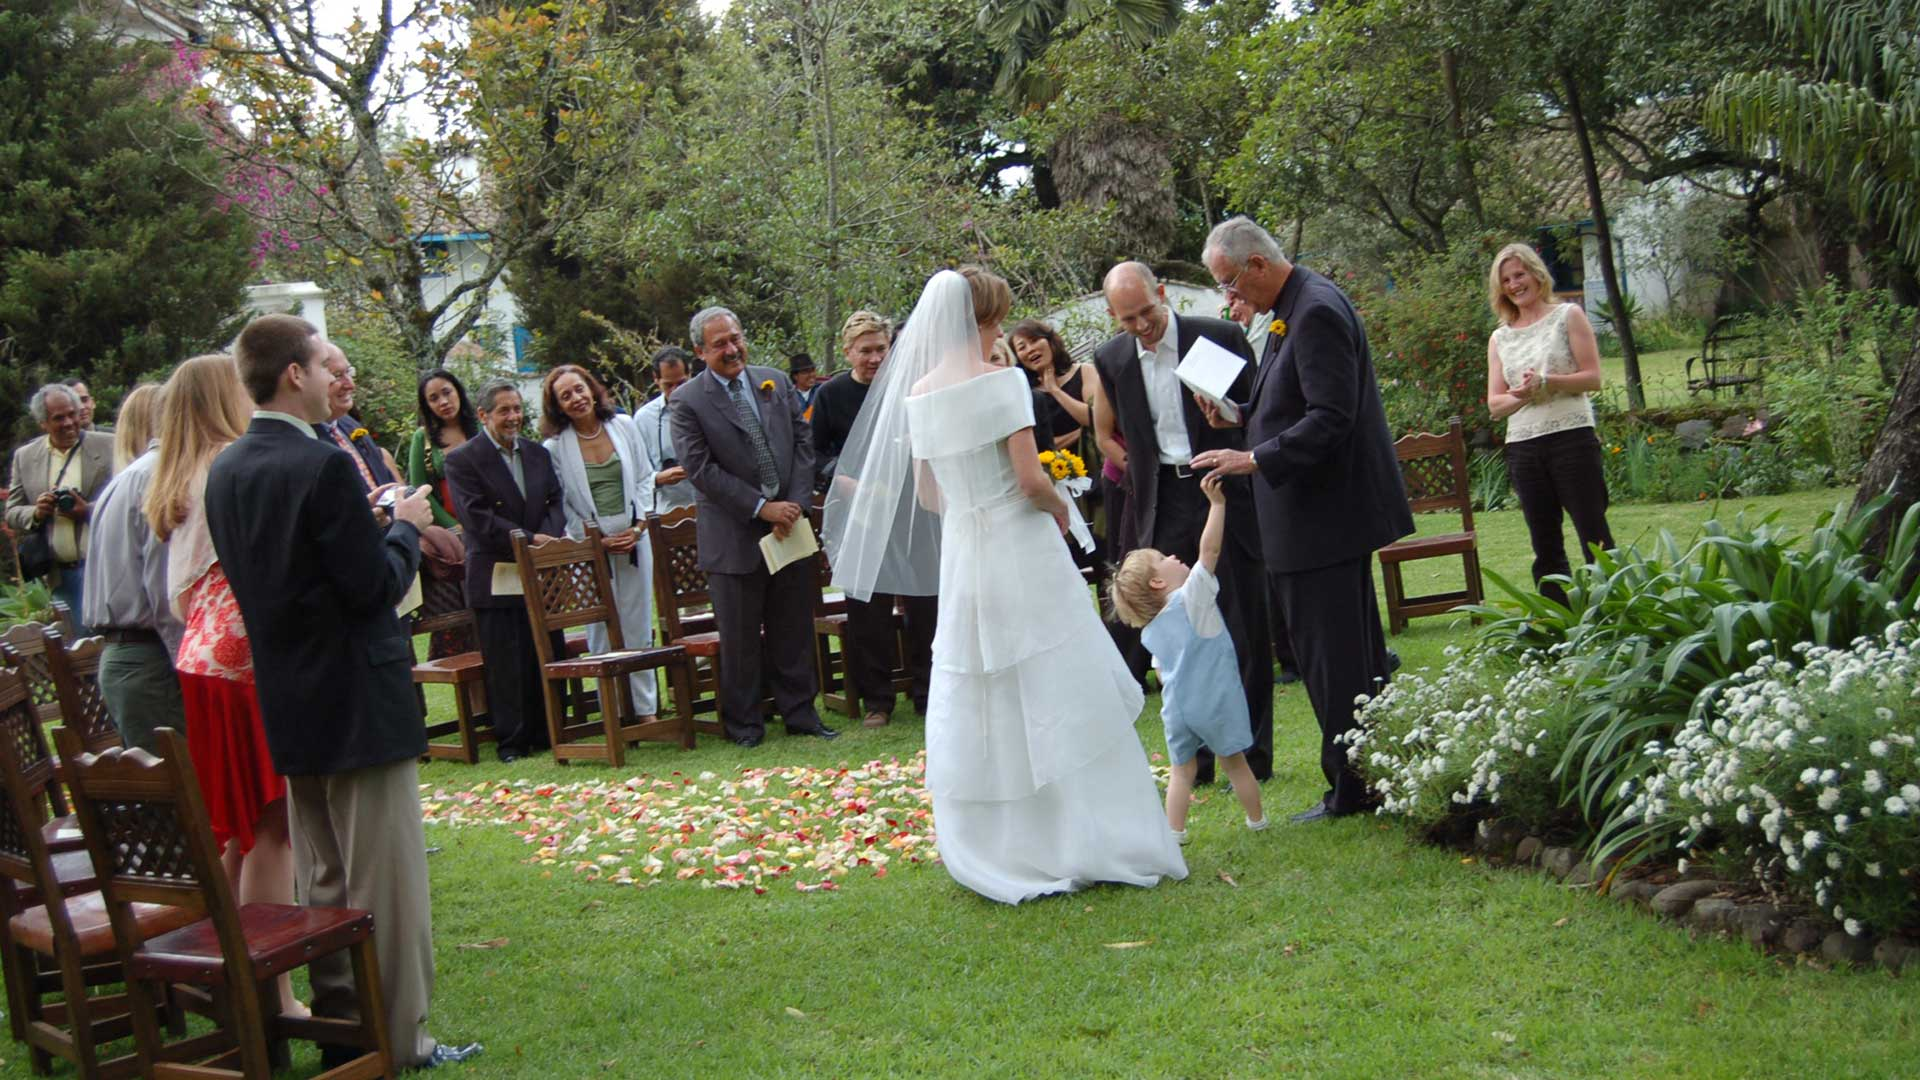 We host Ecuador weddings in the Andes at Hacienda Cusin Ecuador weddings in the Andes are our speciality!